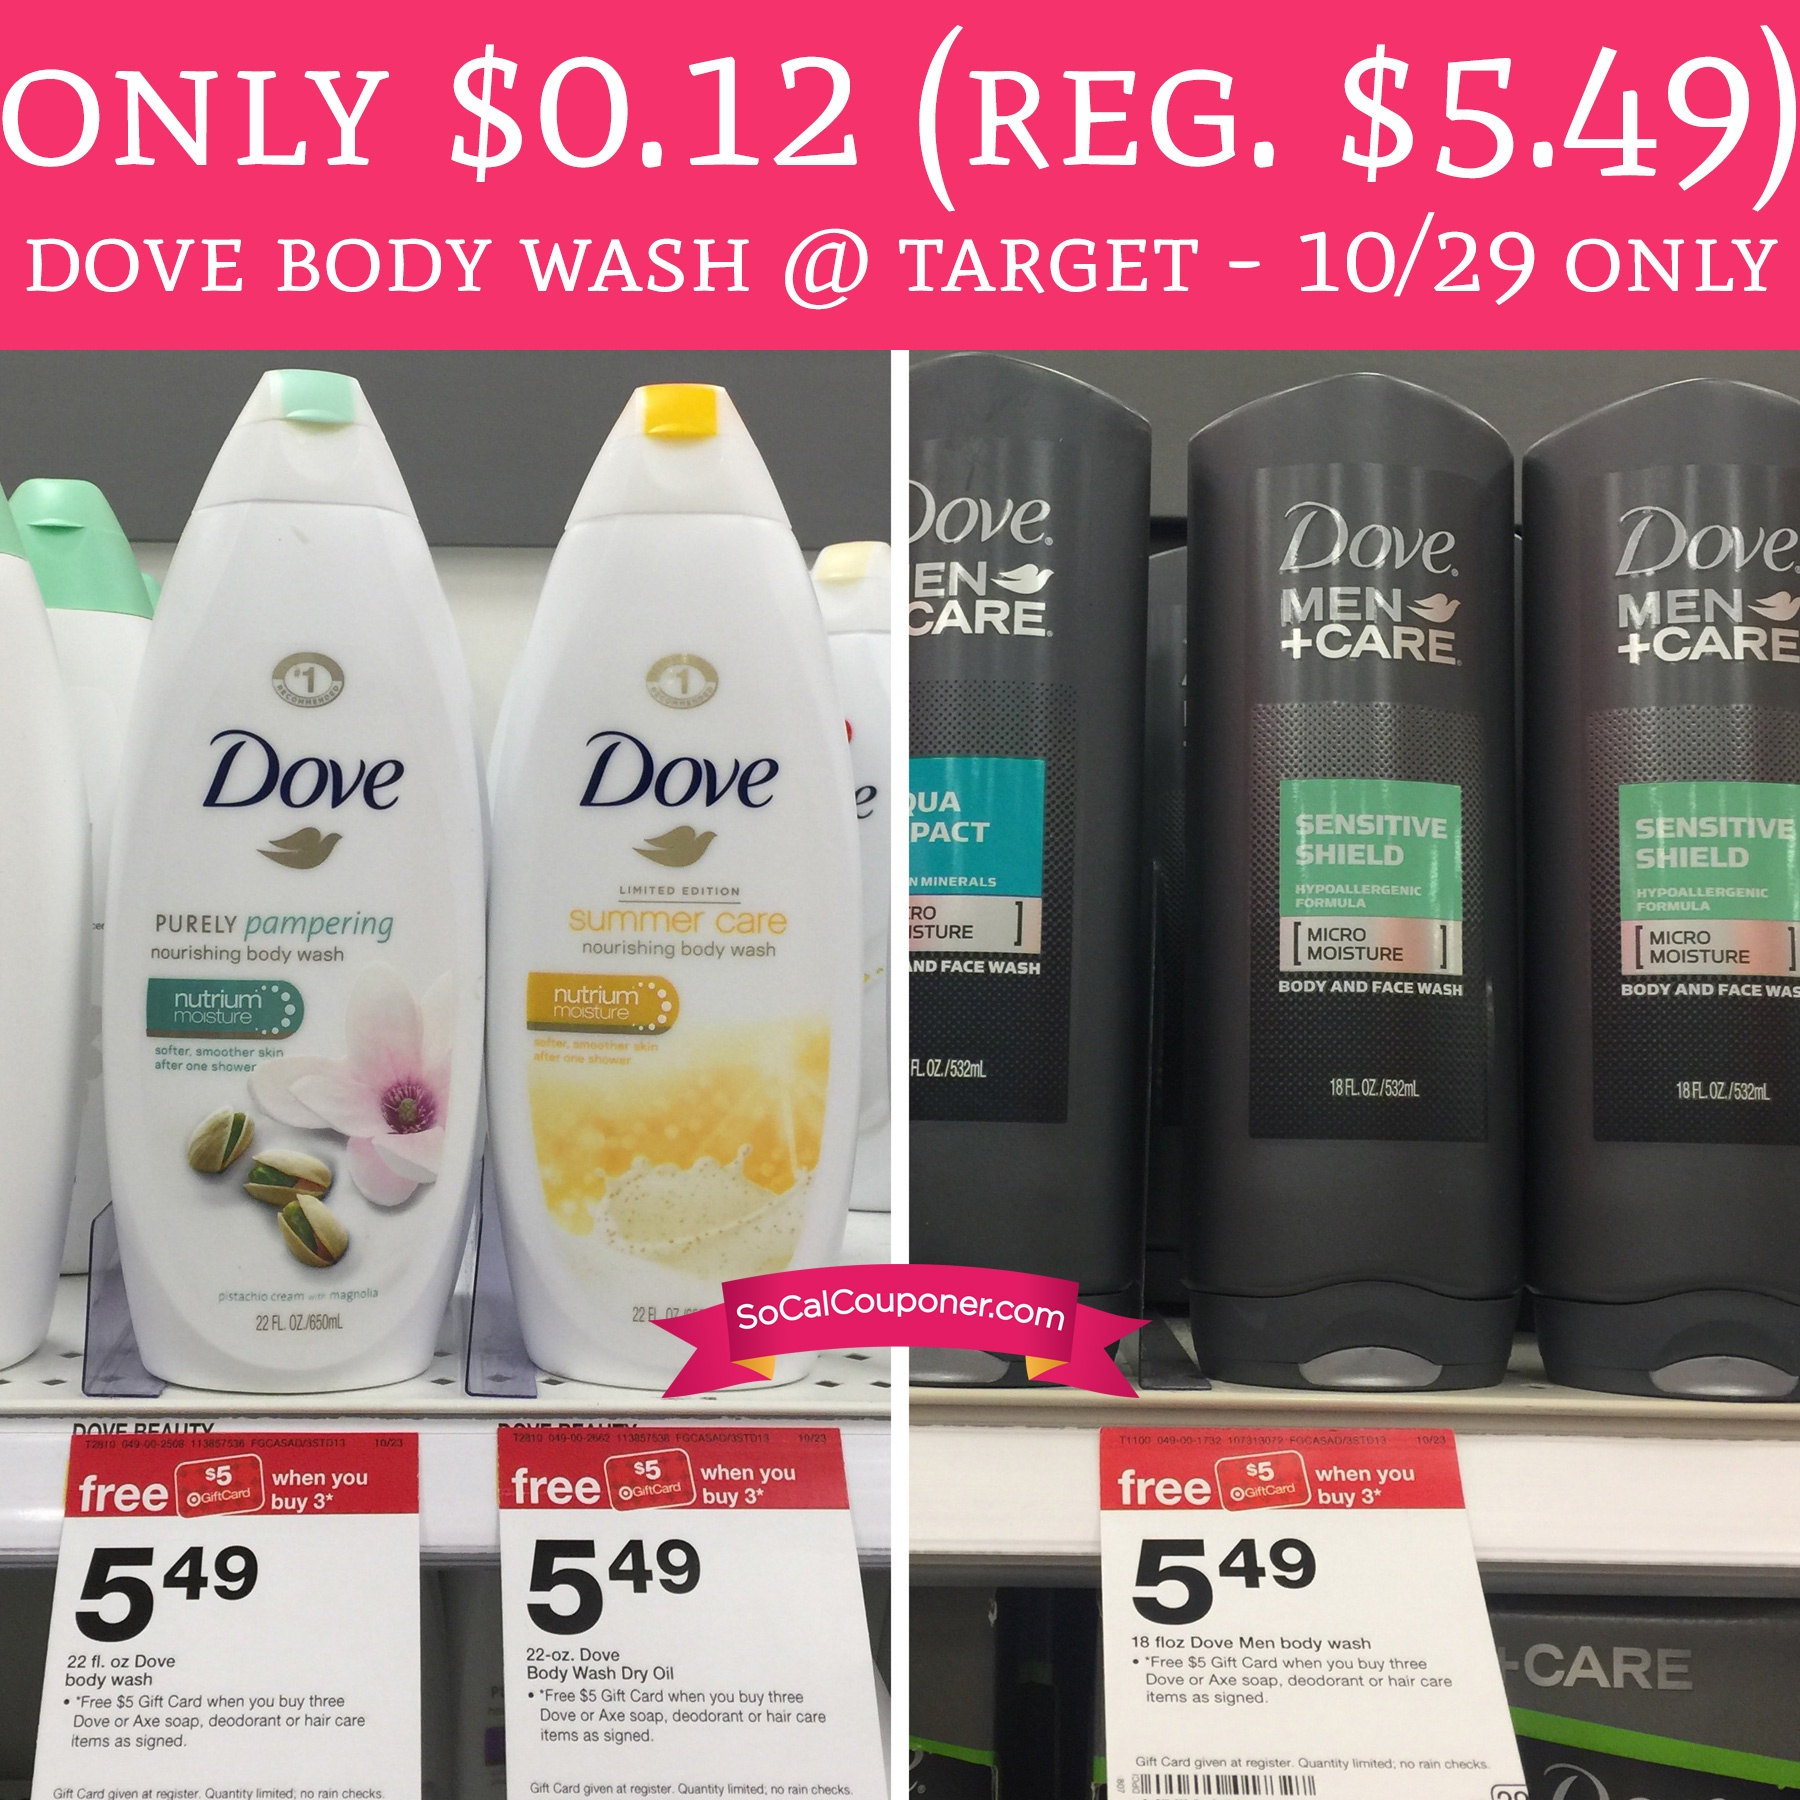 Dove Body Wash Coupon Deal / How To Get Multiple Coupon Inserts For Free - Free Dove Soap Coupons Printable